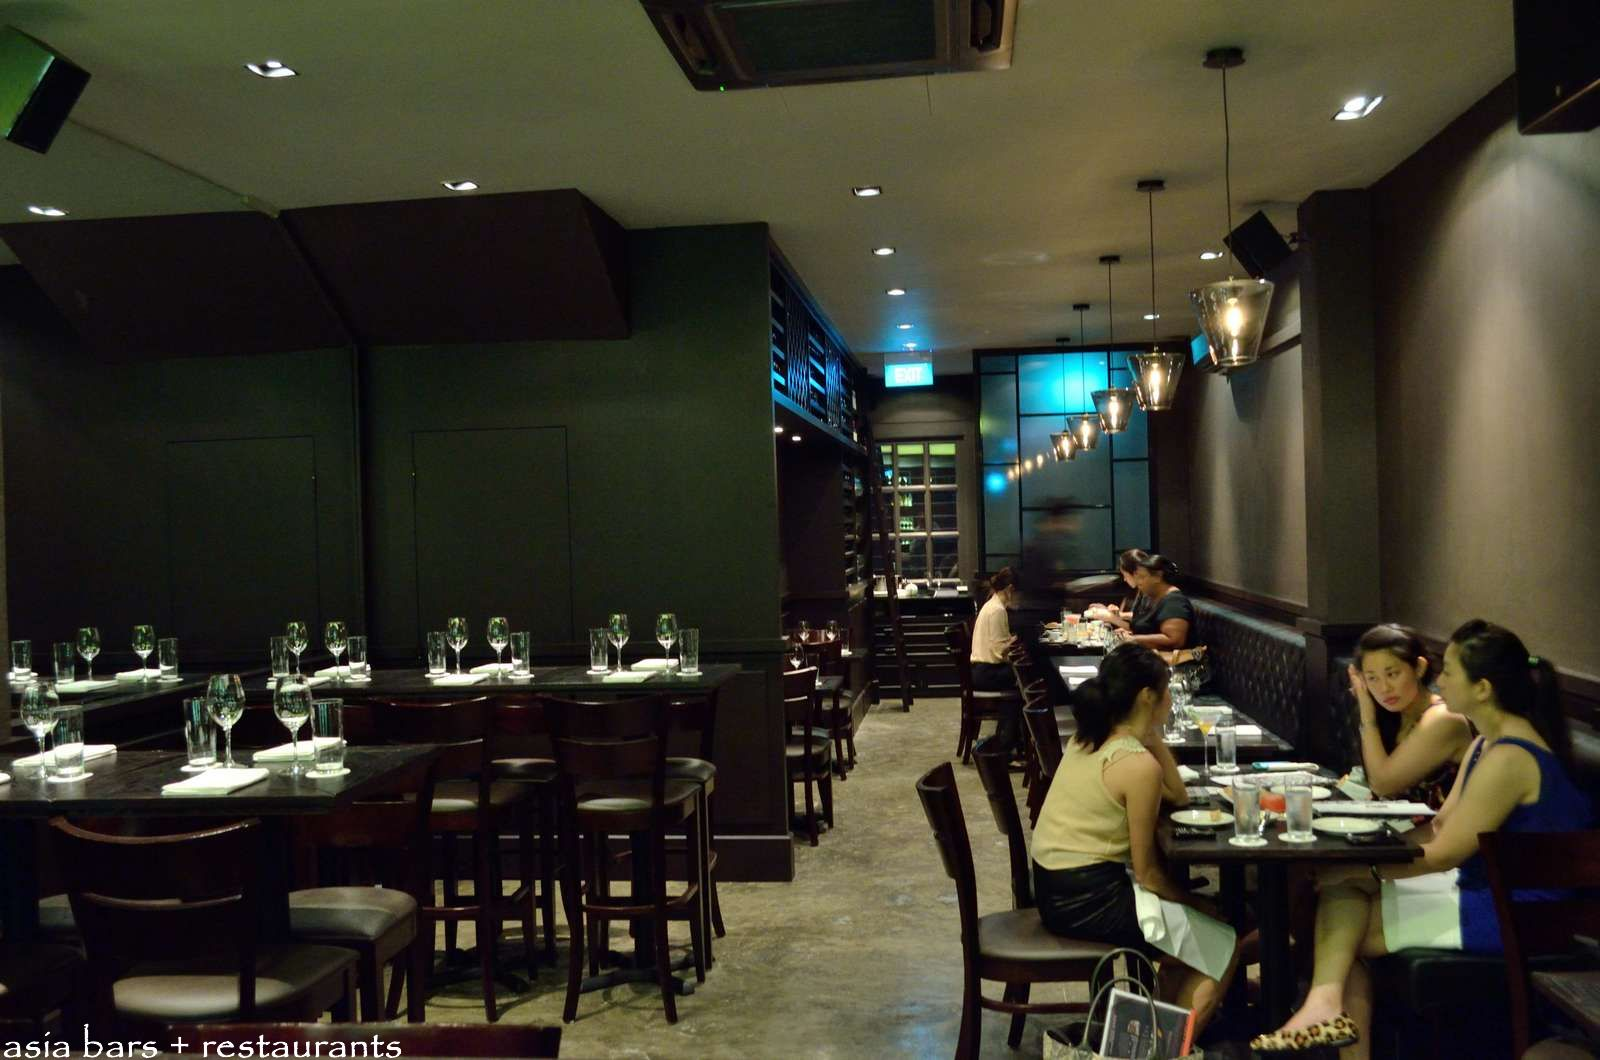 The intimate main dining room has seating for around 45 guests at